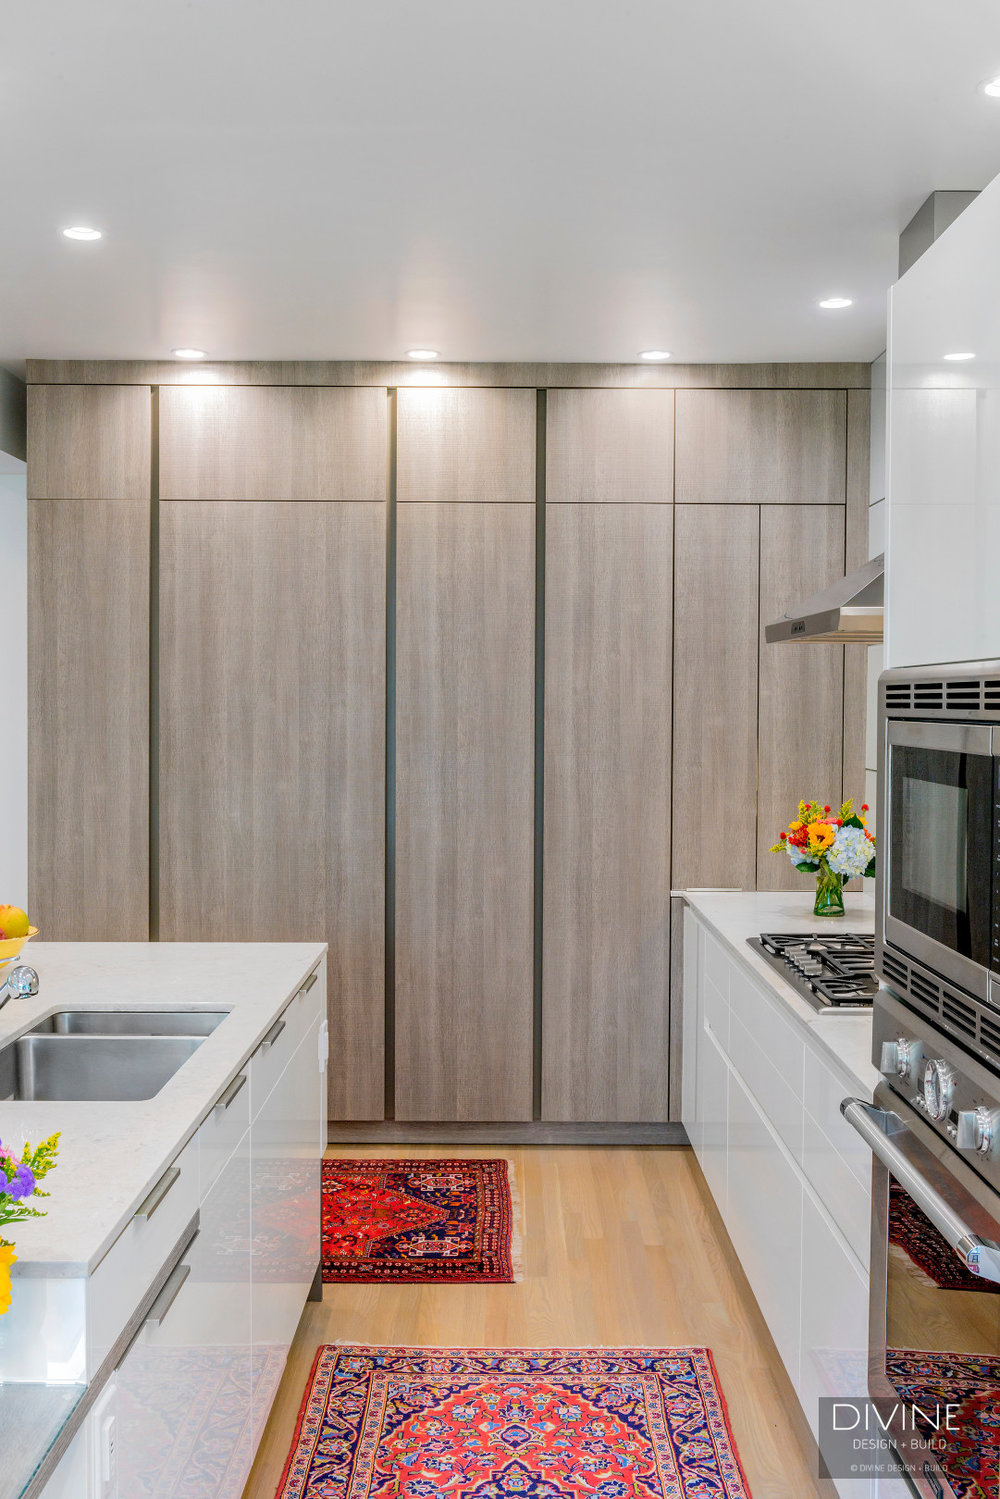 Modern leicht kitchen eclectic details. Colorful furniture and white and grey cabinets. Oak veneer accents and niche shelving. Integrated LEDs